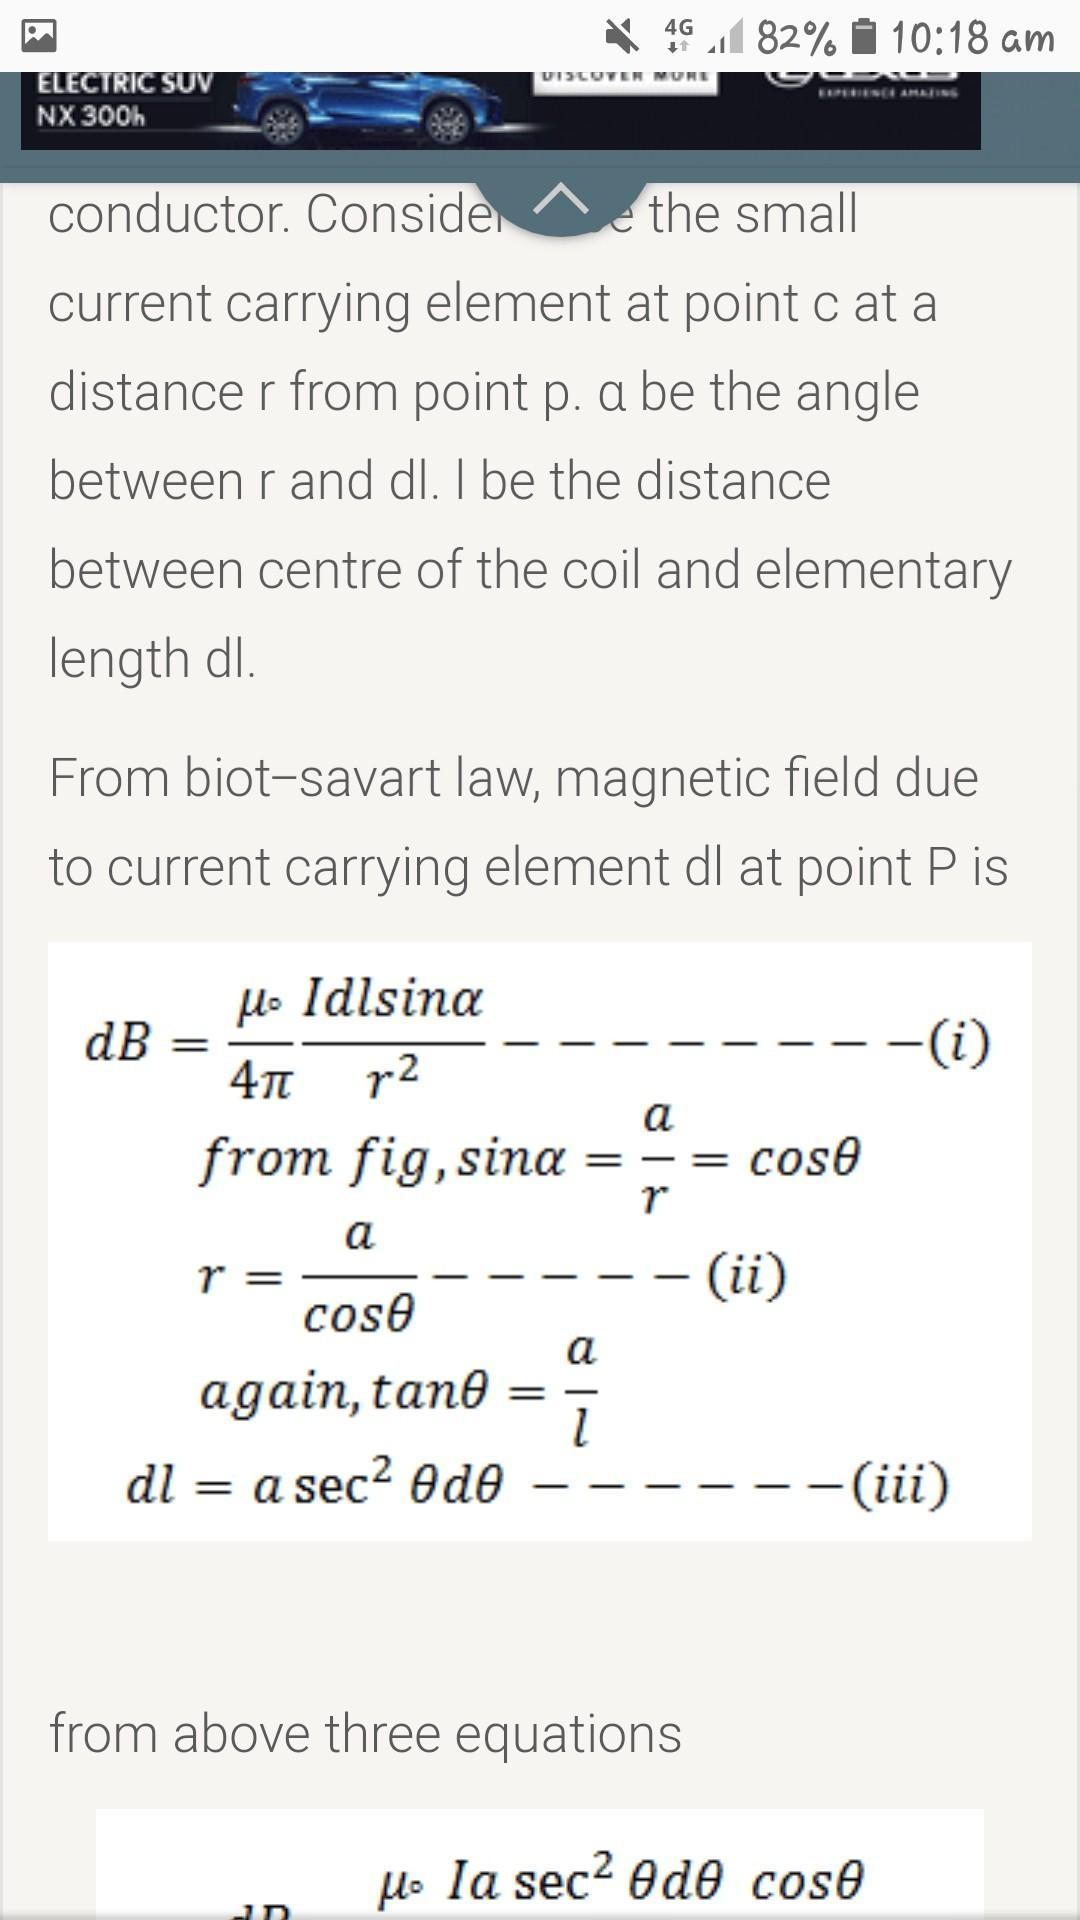 Use biot-savart's law to derive an expression for the